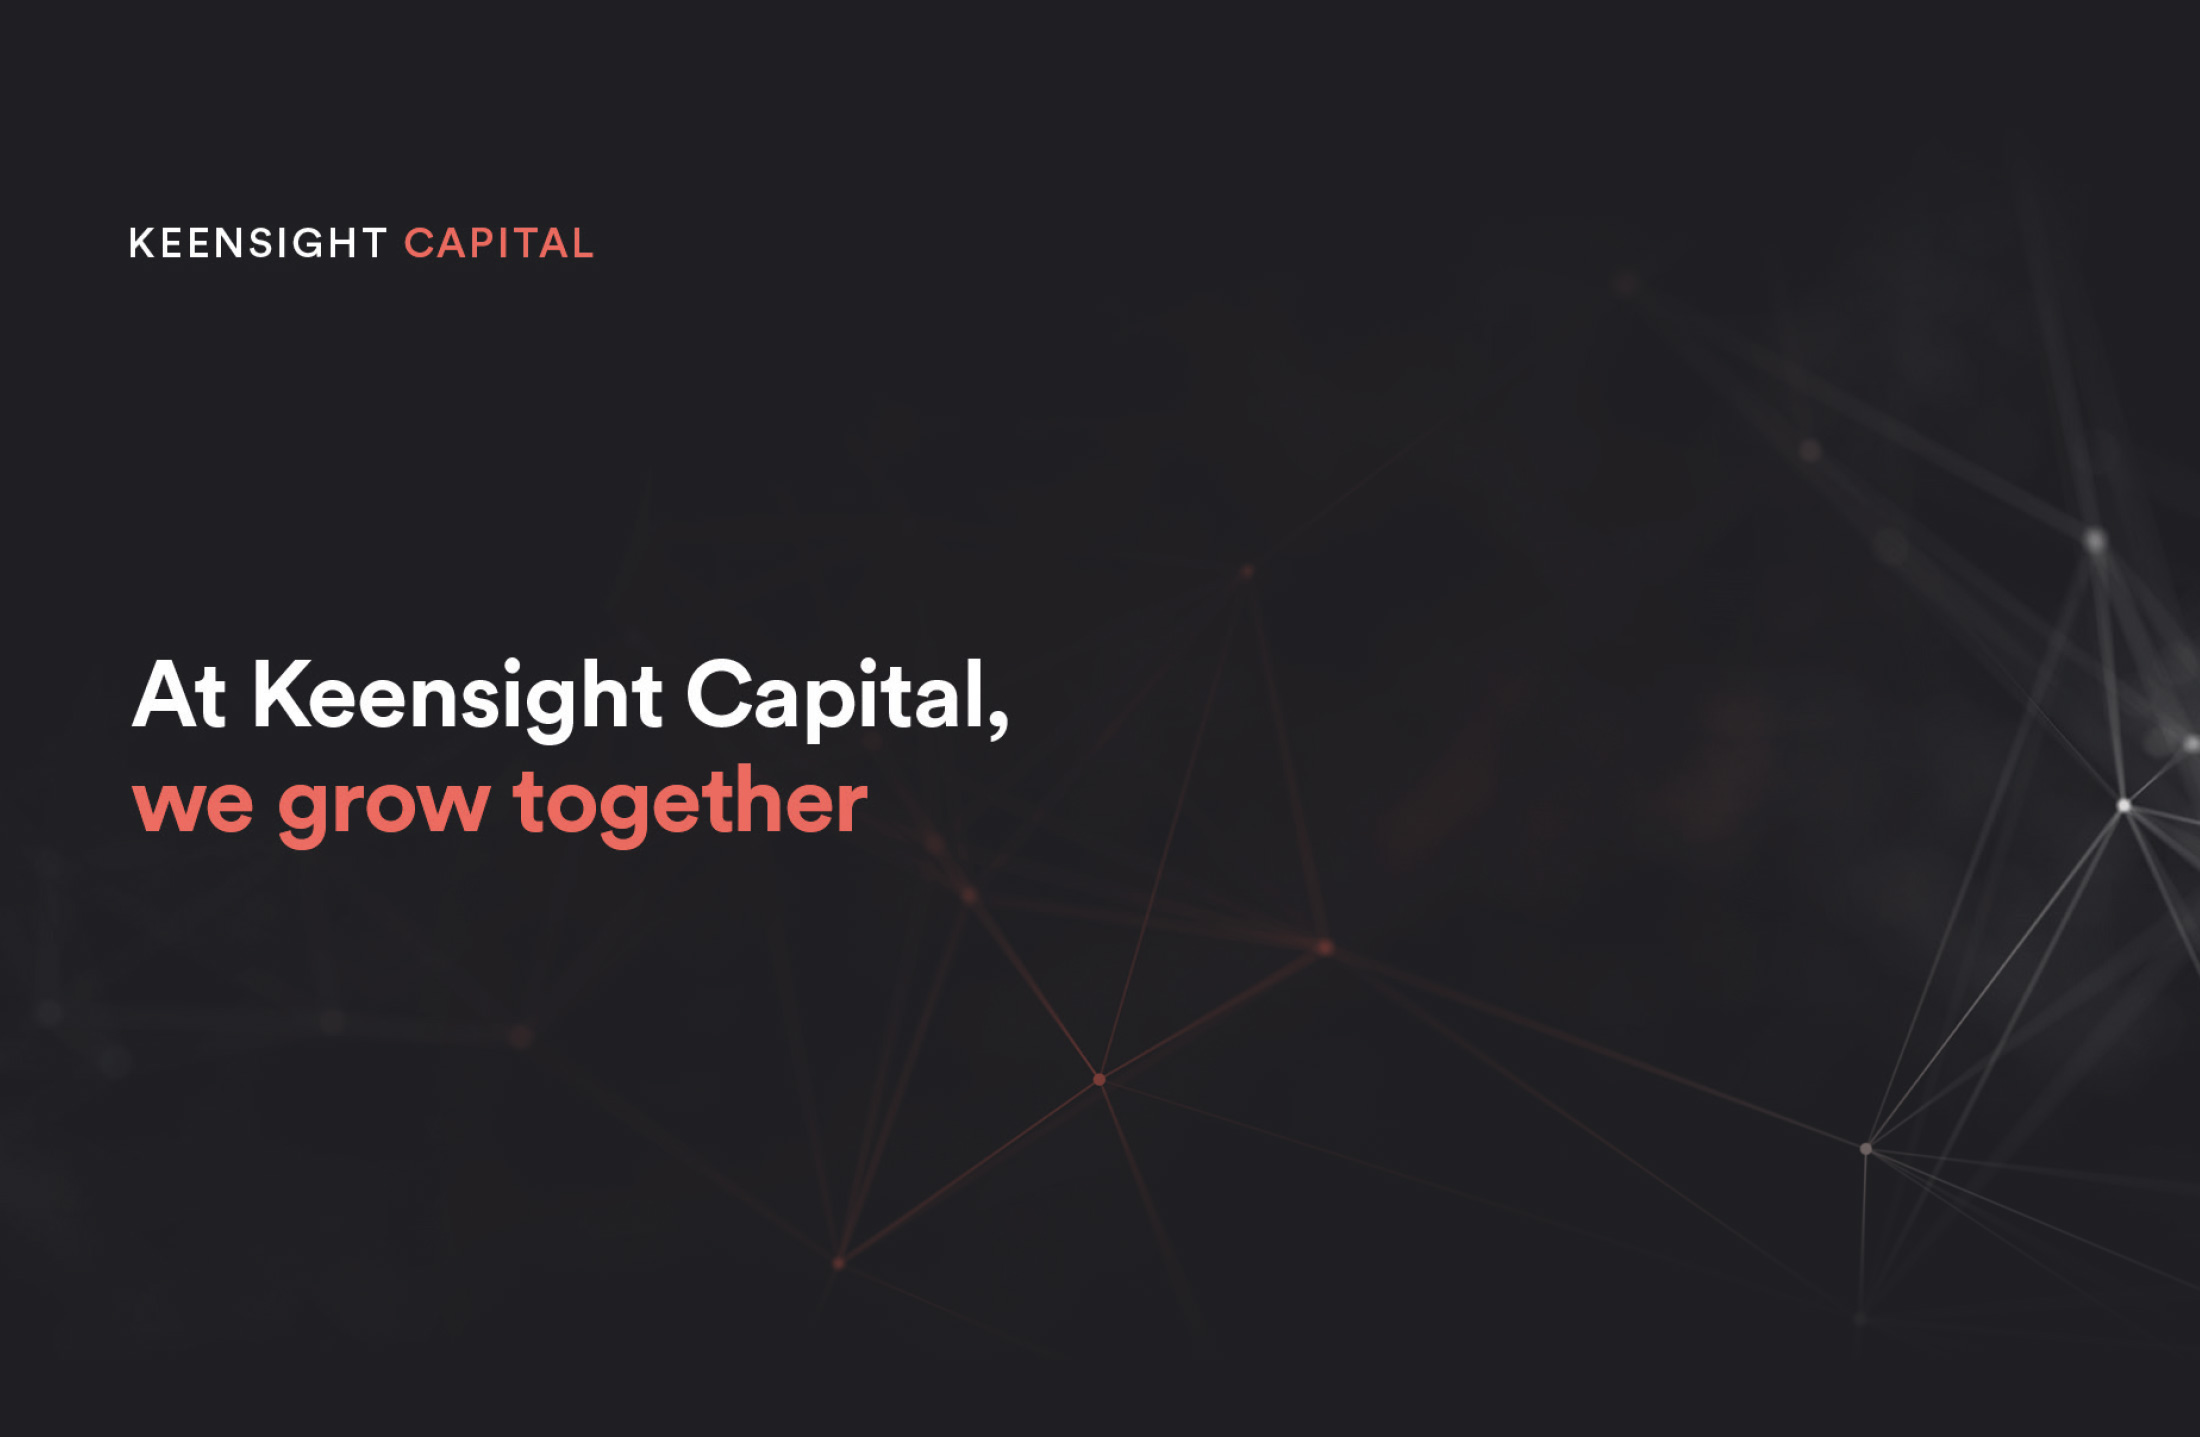 Keensight capital identité